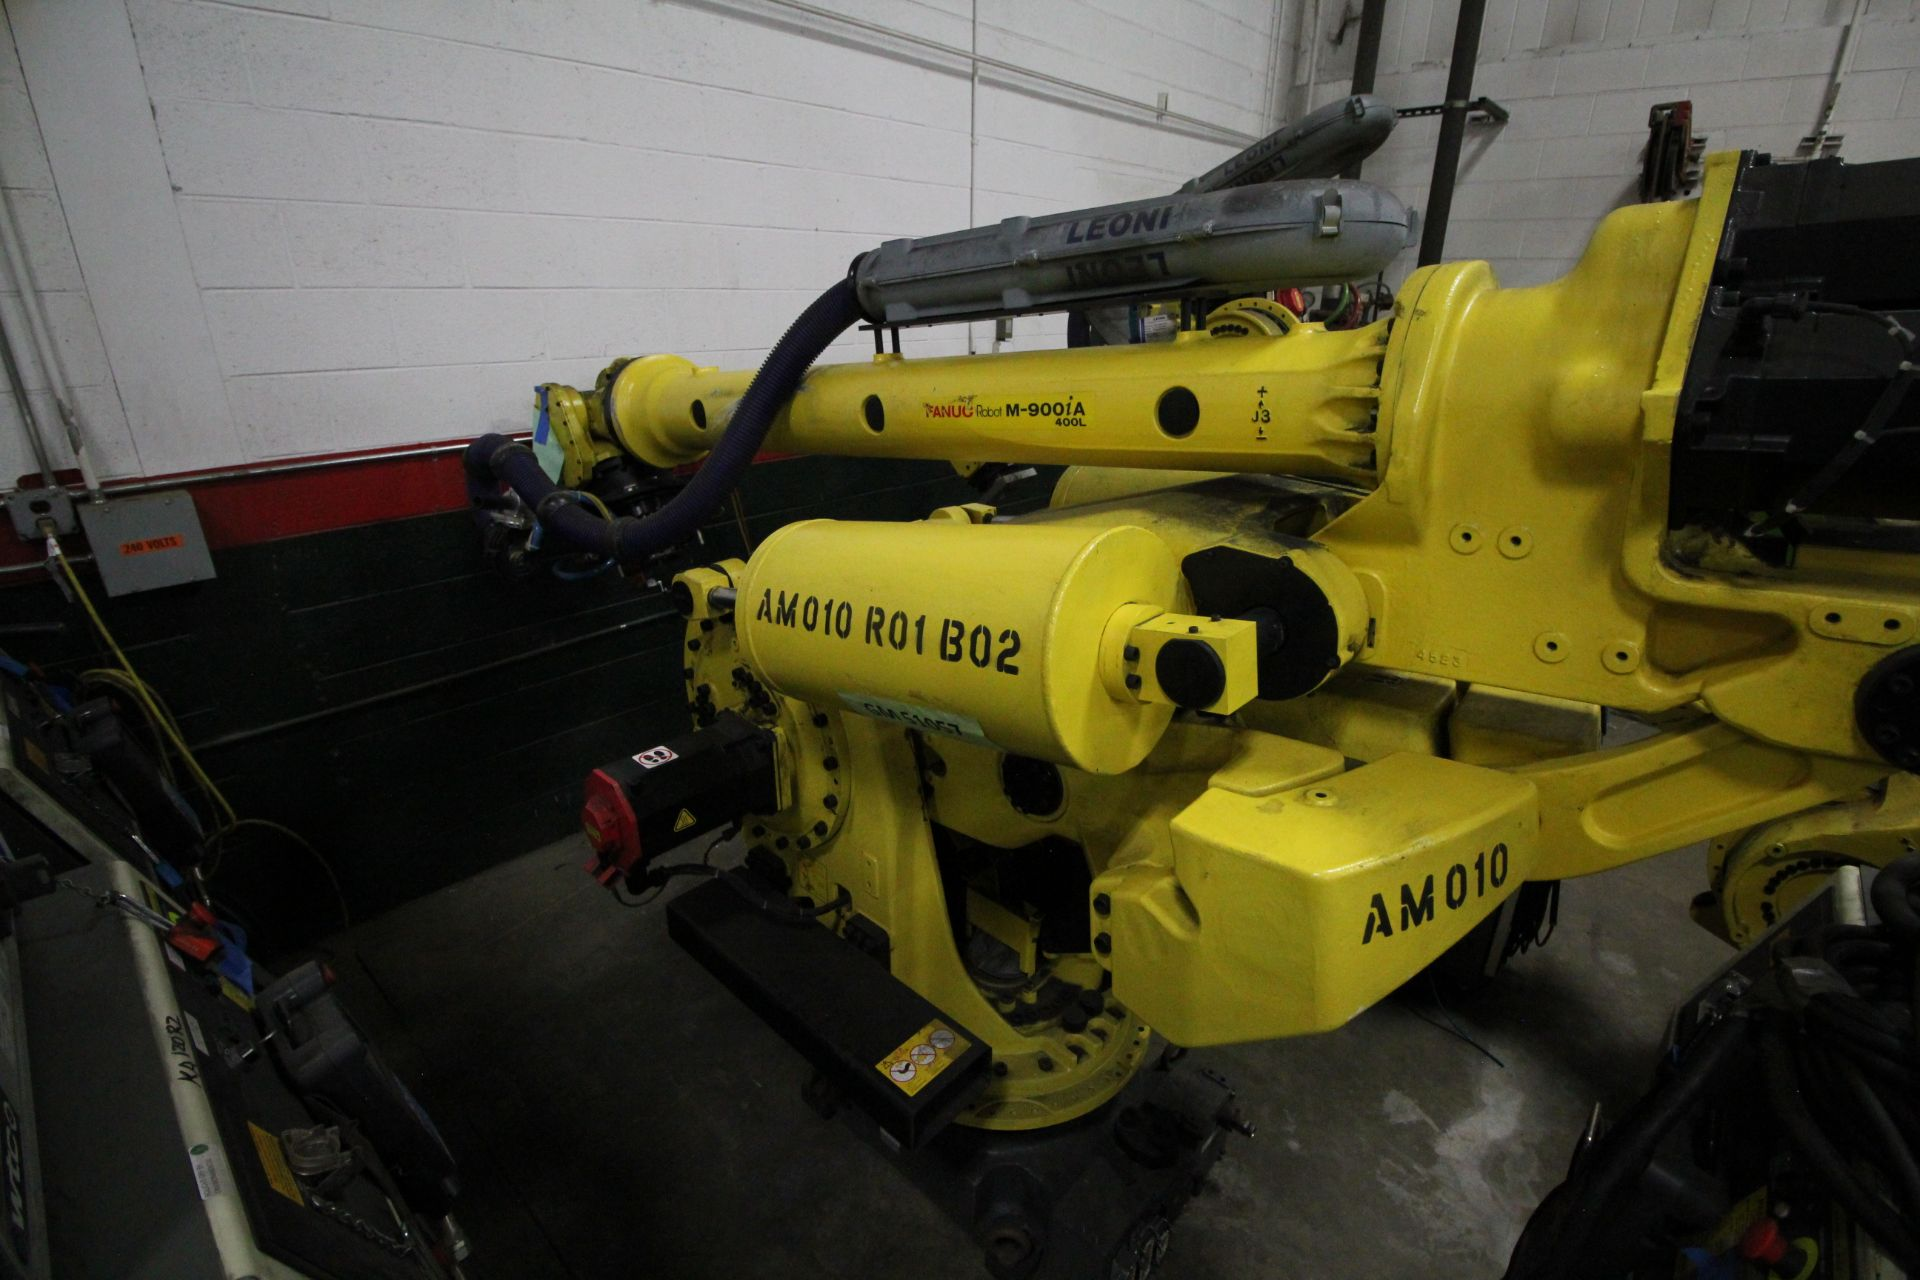 FANUC ROBOT M-900iA/400L WITH R-30iA CONTROLLER, TEACHPENDANT AND CABLES, SN 153431, YEAR 2014 - Image 2 of 11